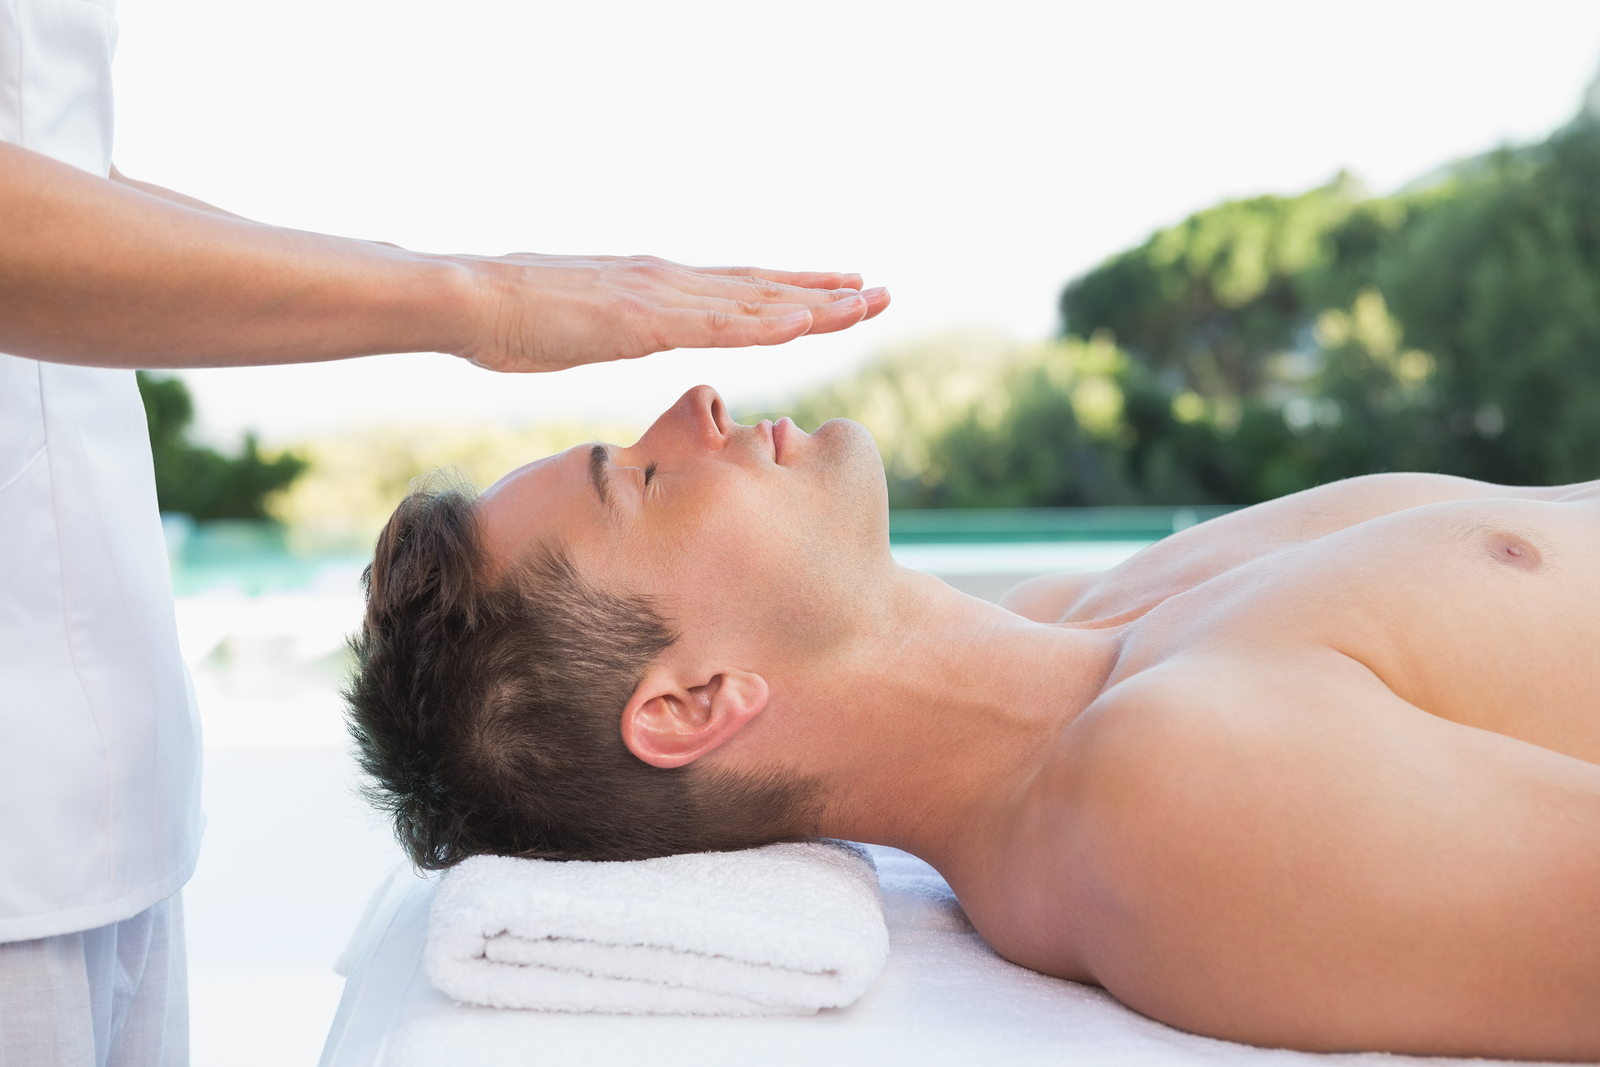 Peaceful man getting reiki treatment poolside outside at the spa